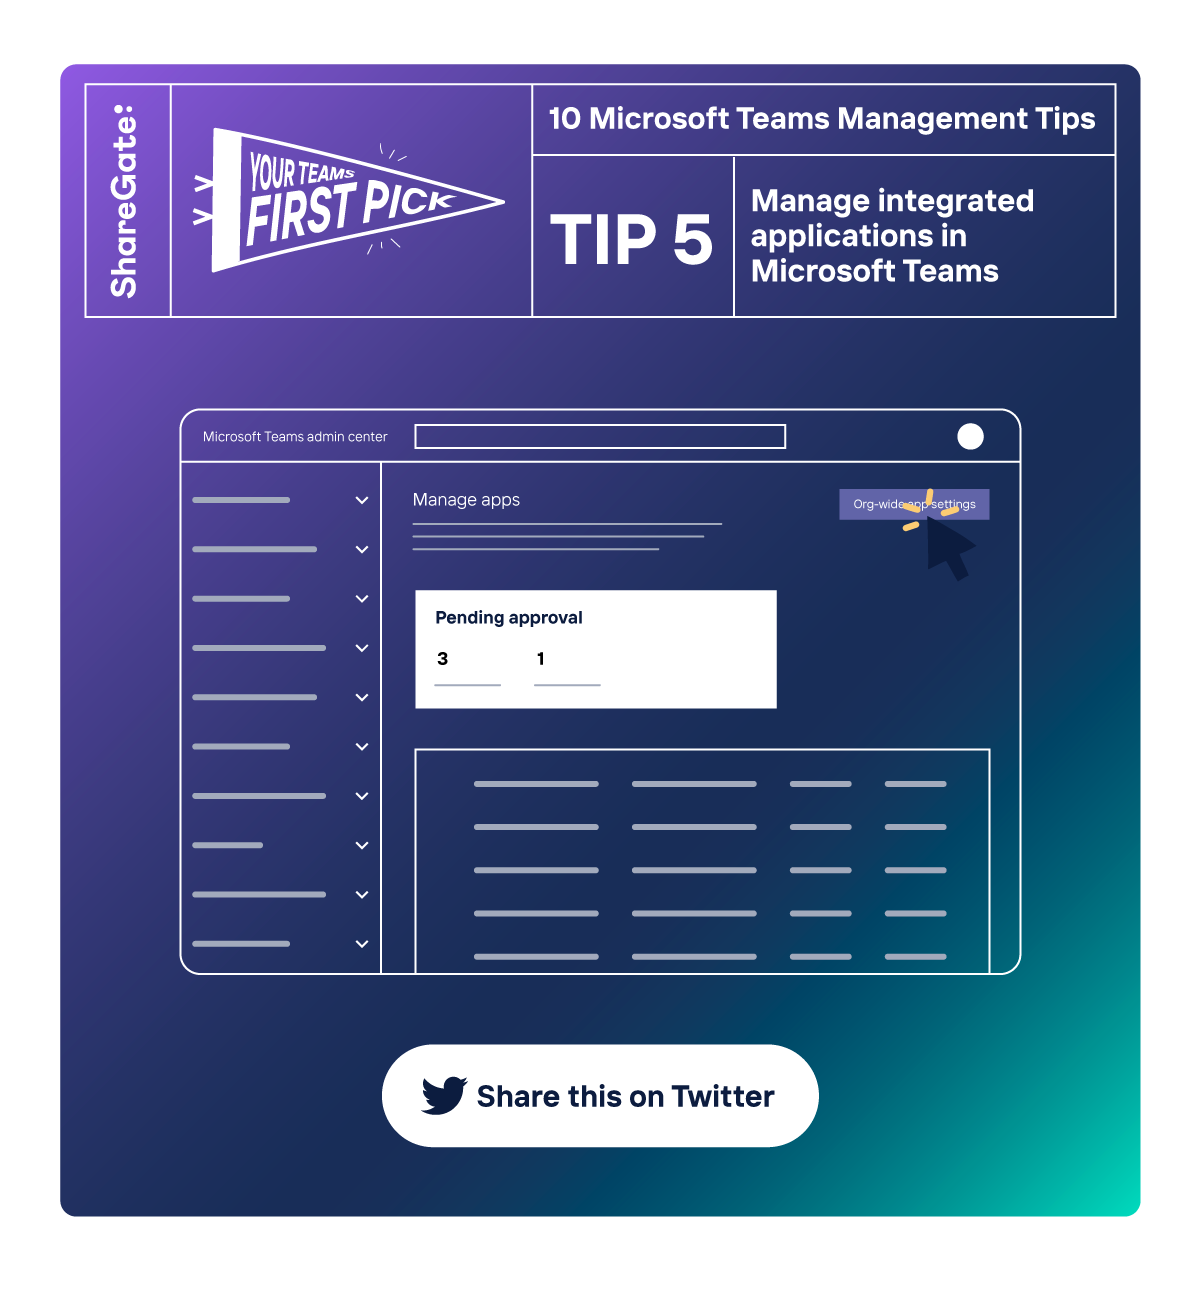 Illustrated infographic showing tip #5: Manage integrated applications in Microsoft Teams.